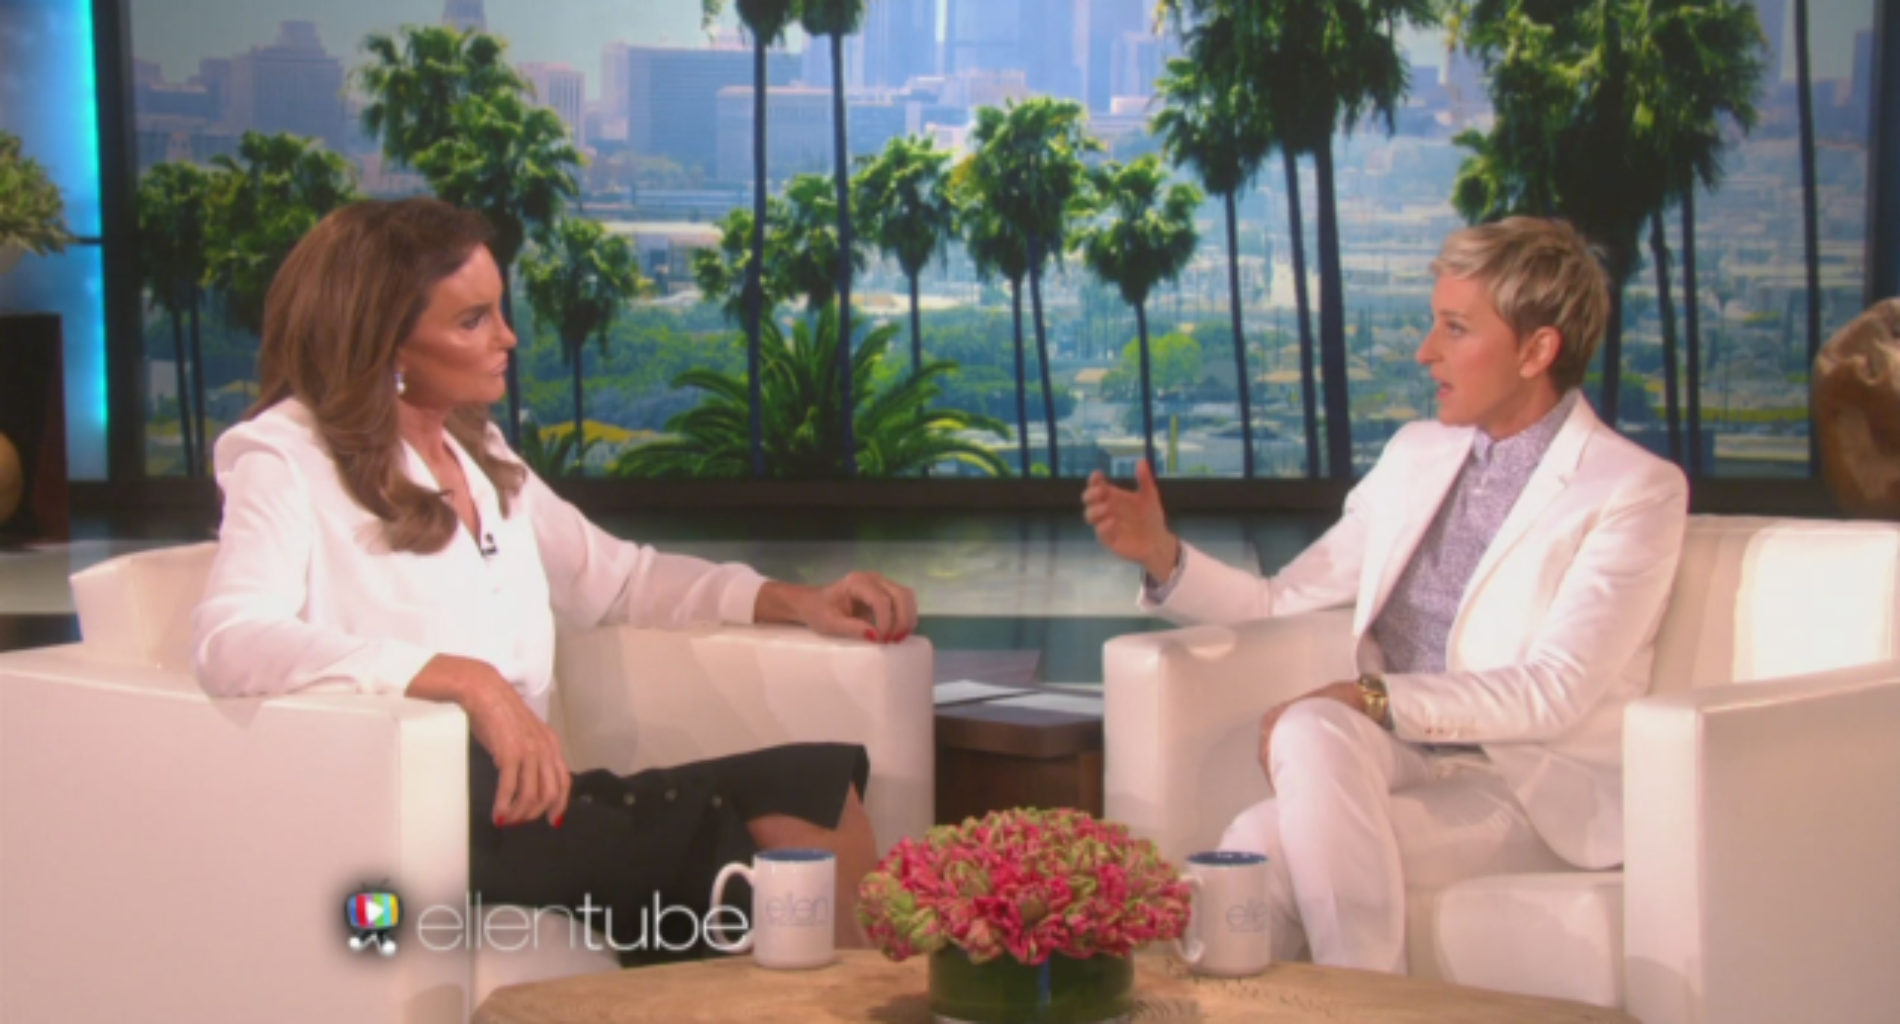 Caitlyn Jenner plays down negative comments about gay marriage